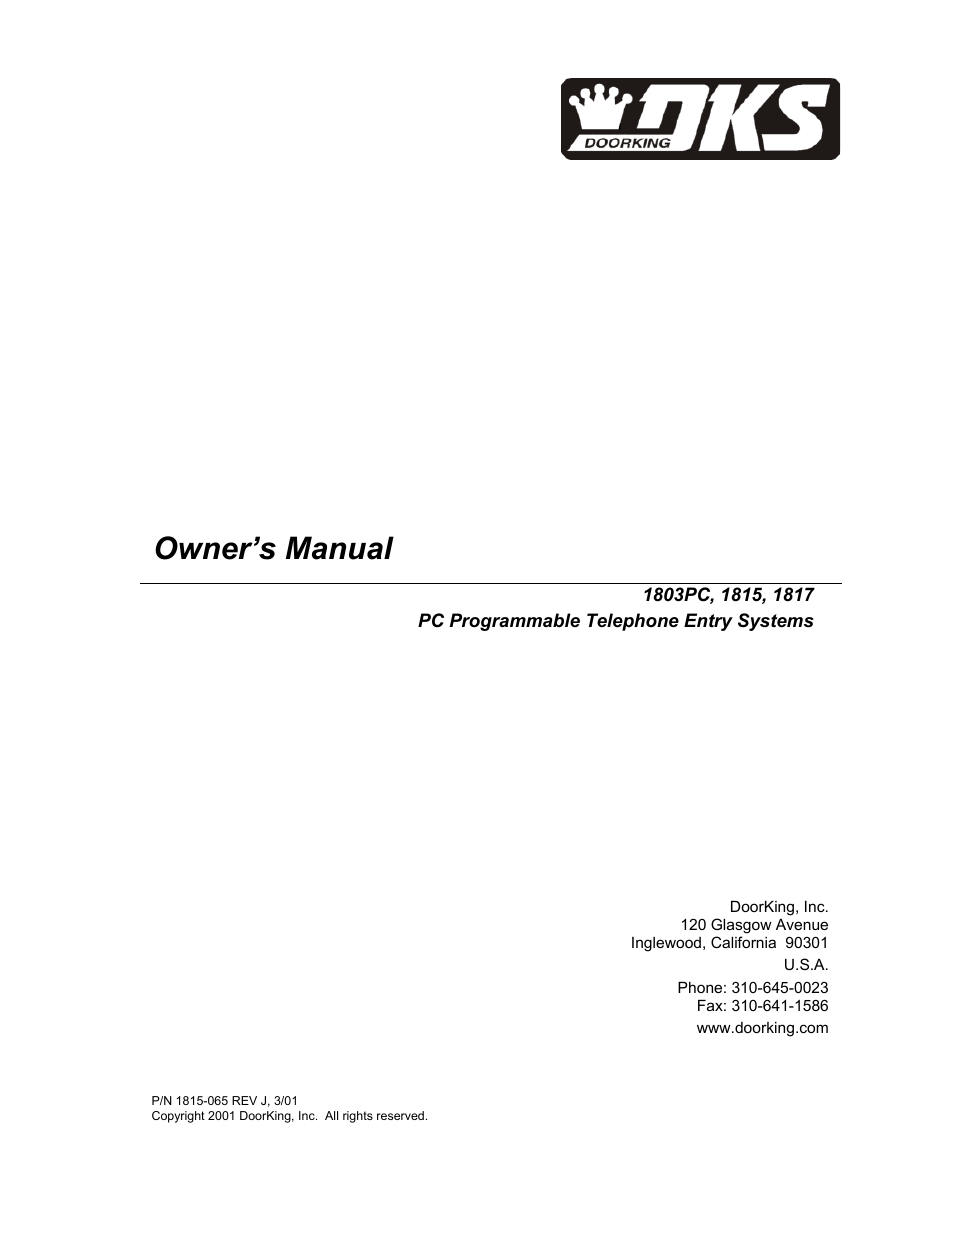 doorking 1817 page1 doorking 1817 user manual 67 pages also for 1815, 1803pc  at n-0.co